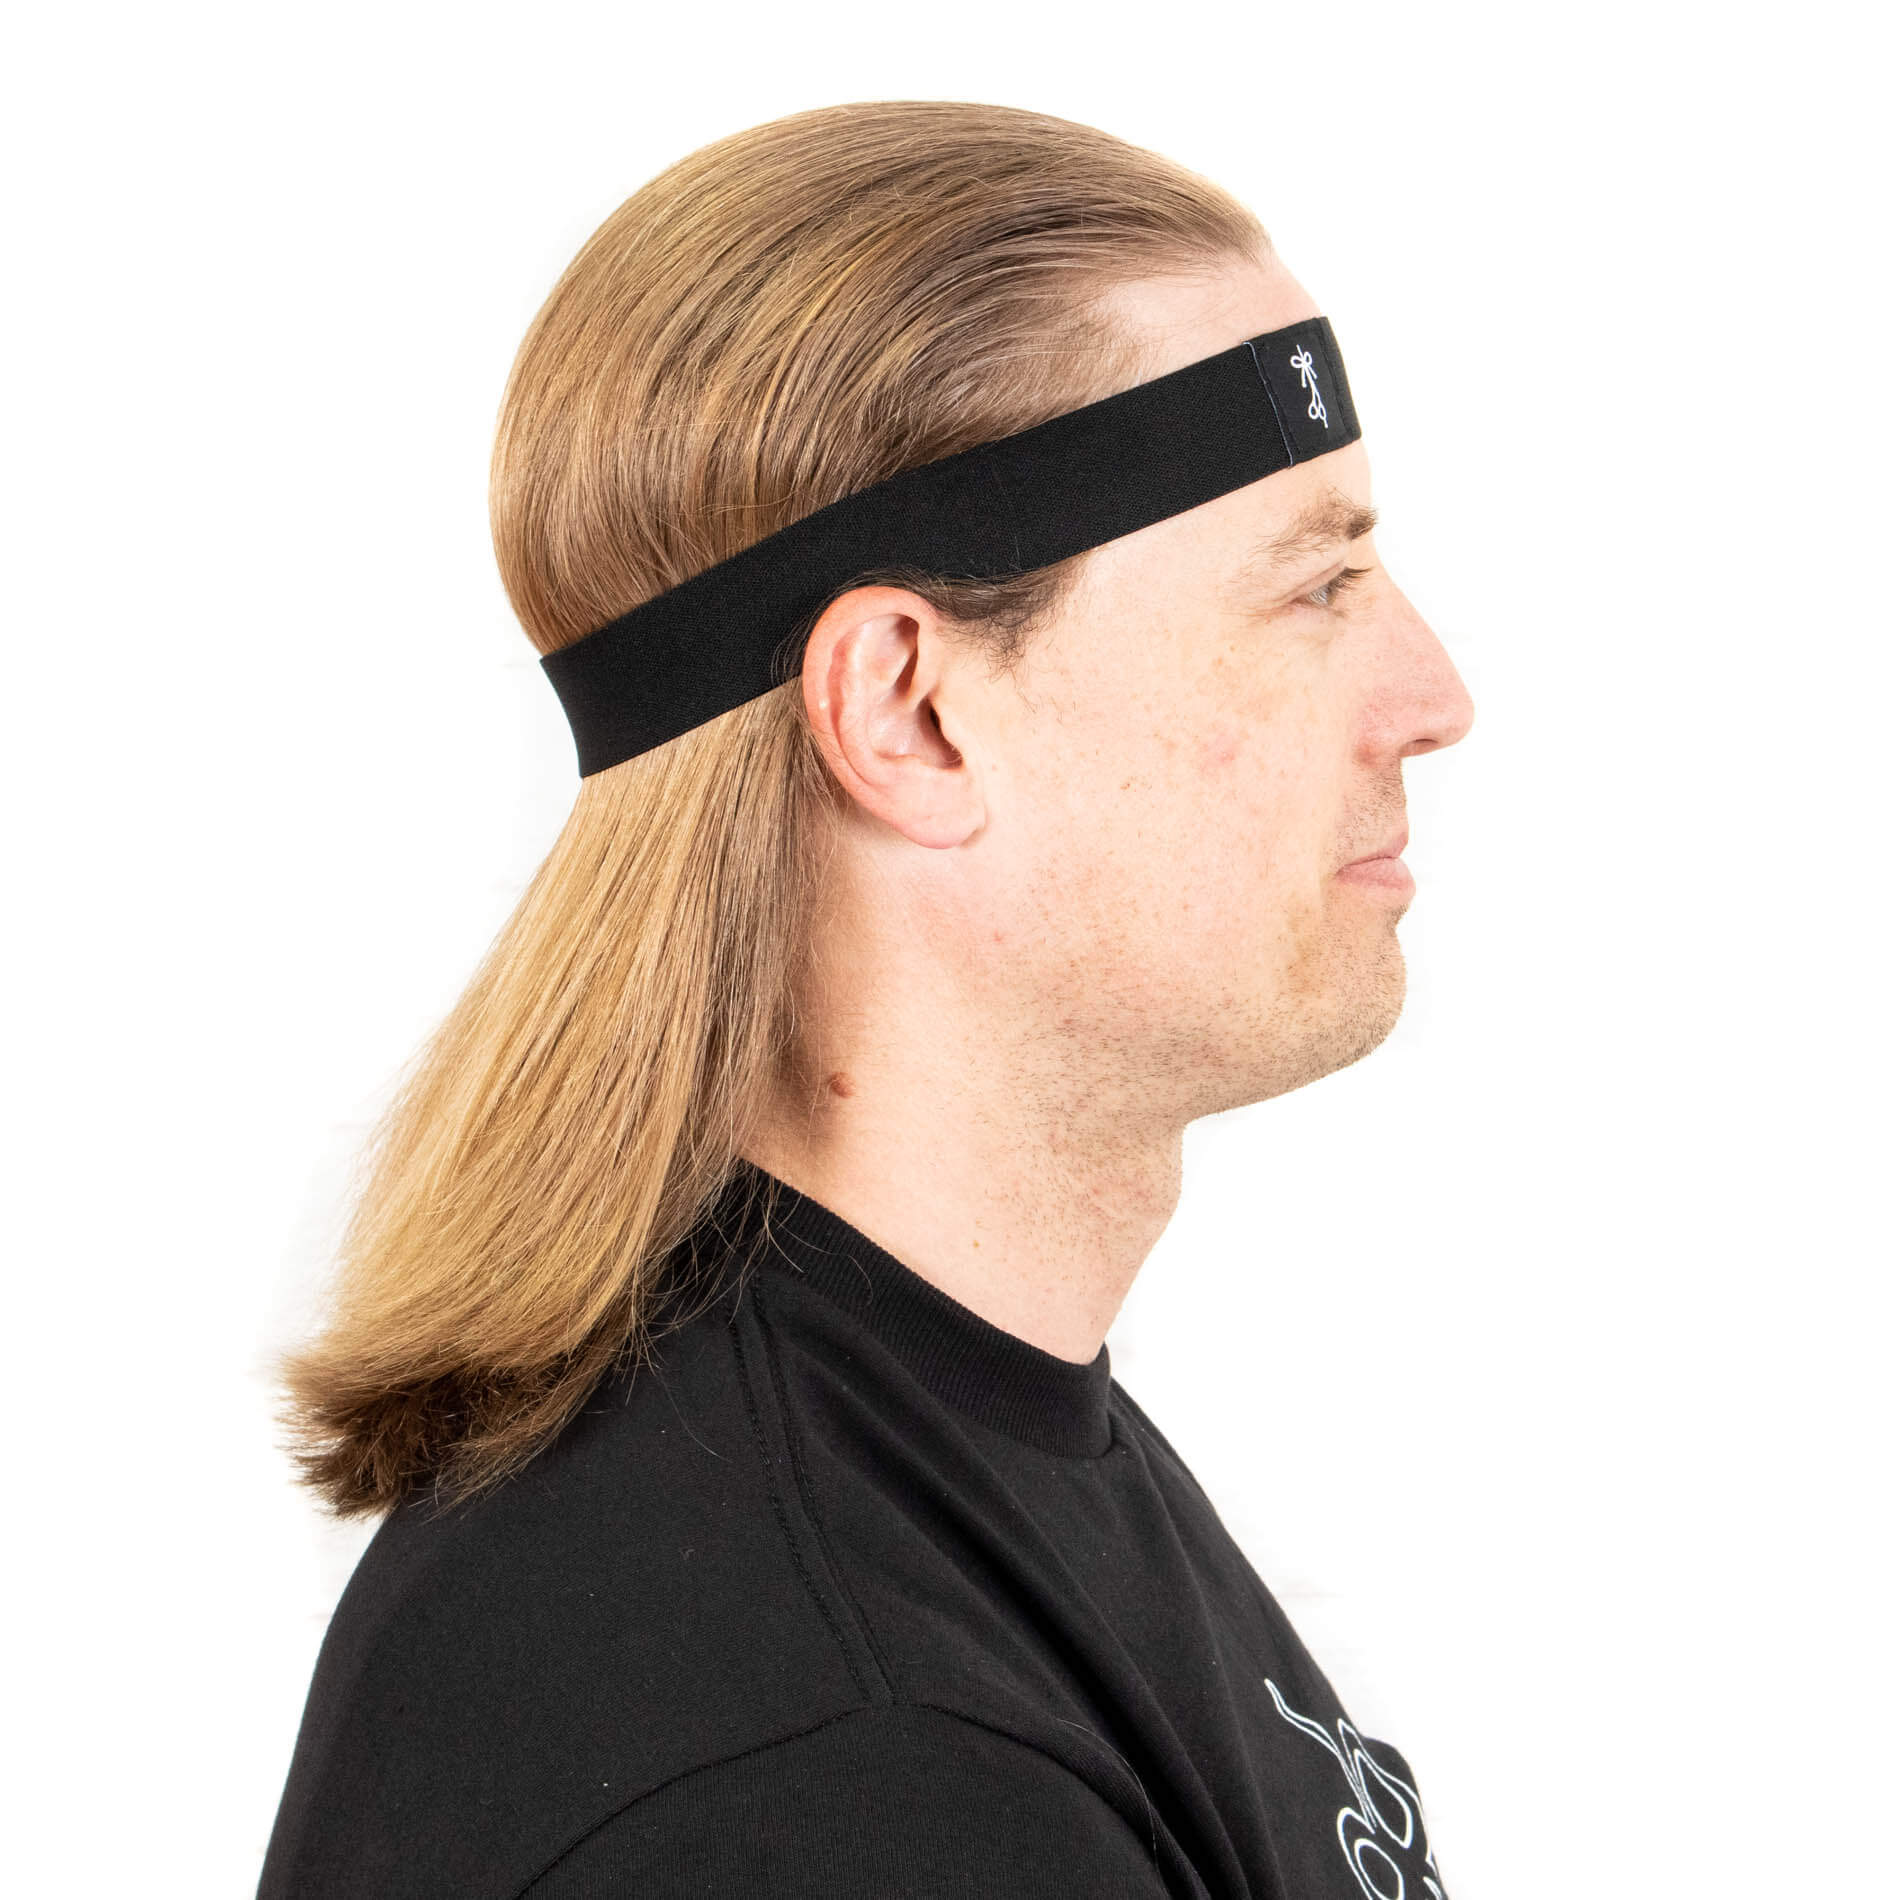 Thick headband holding long hair back behind the ears.